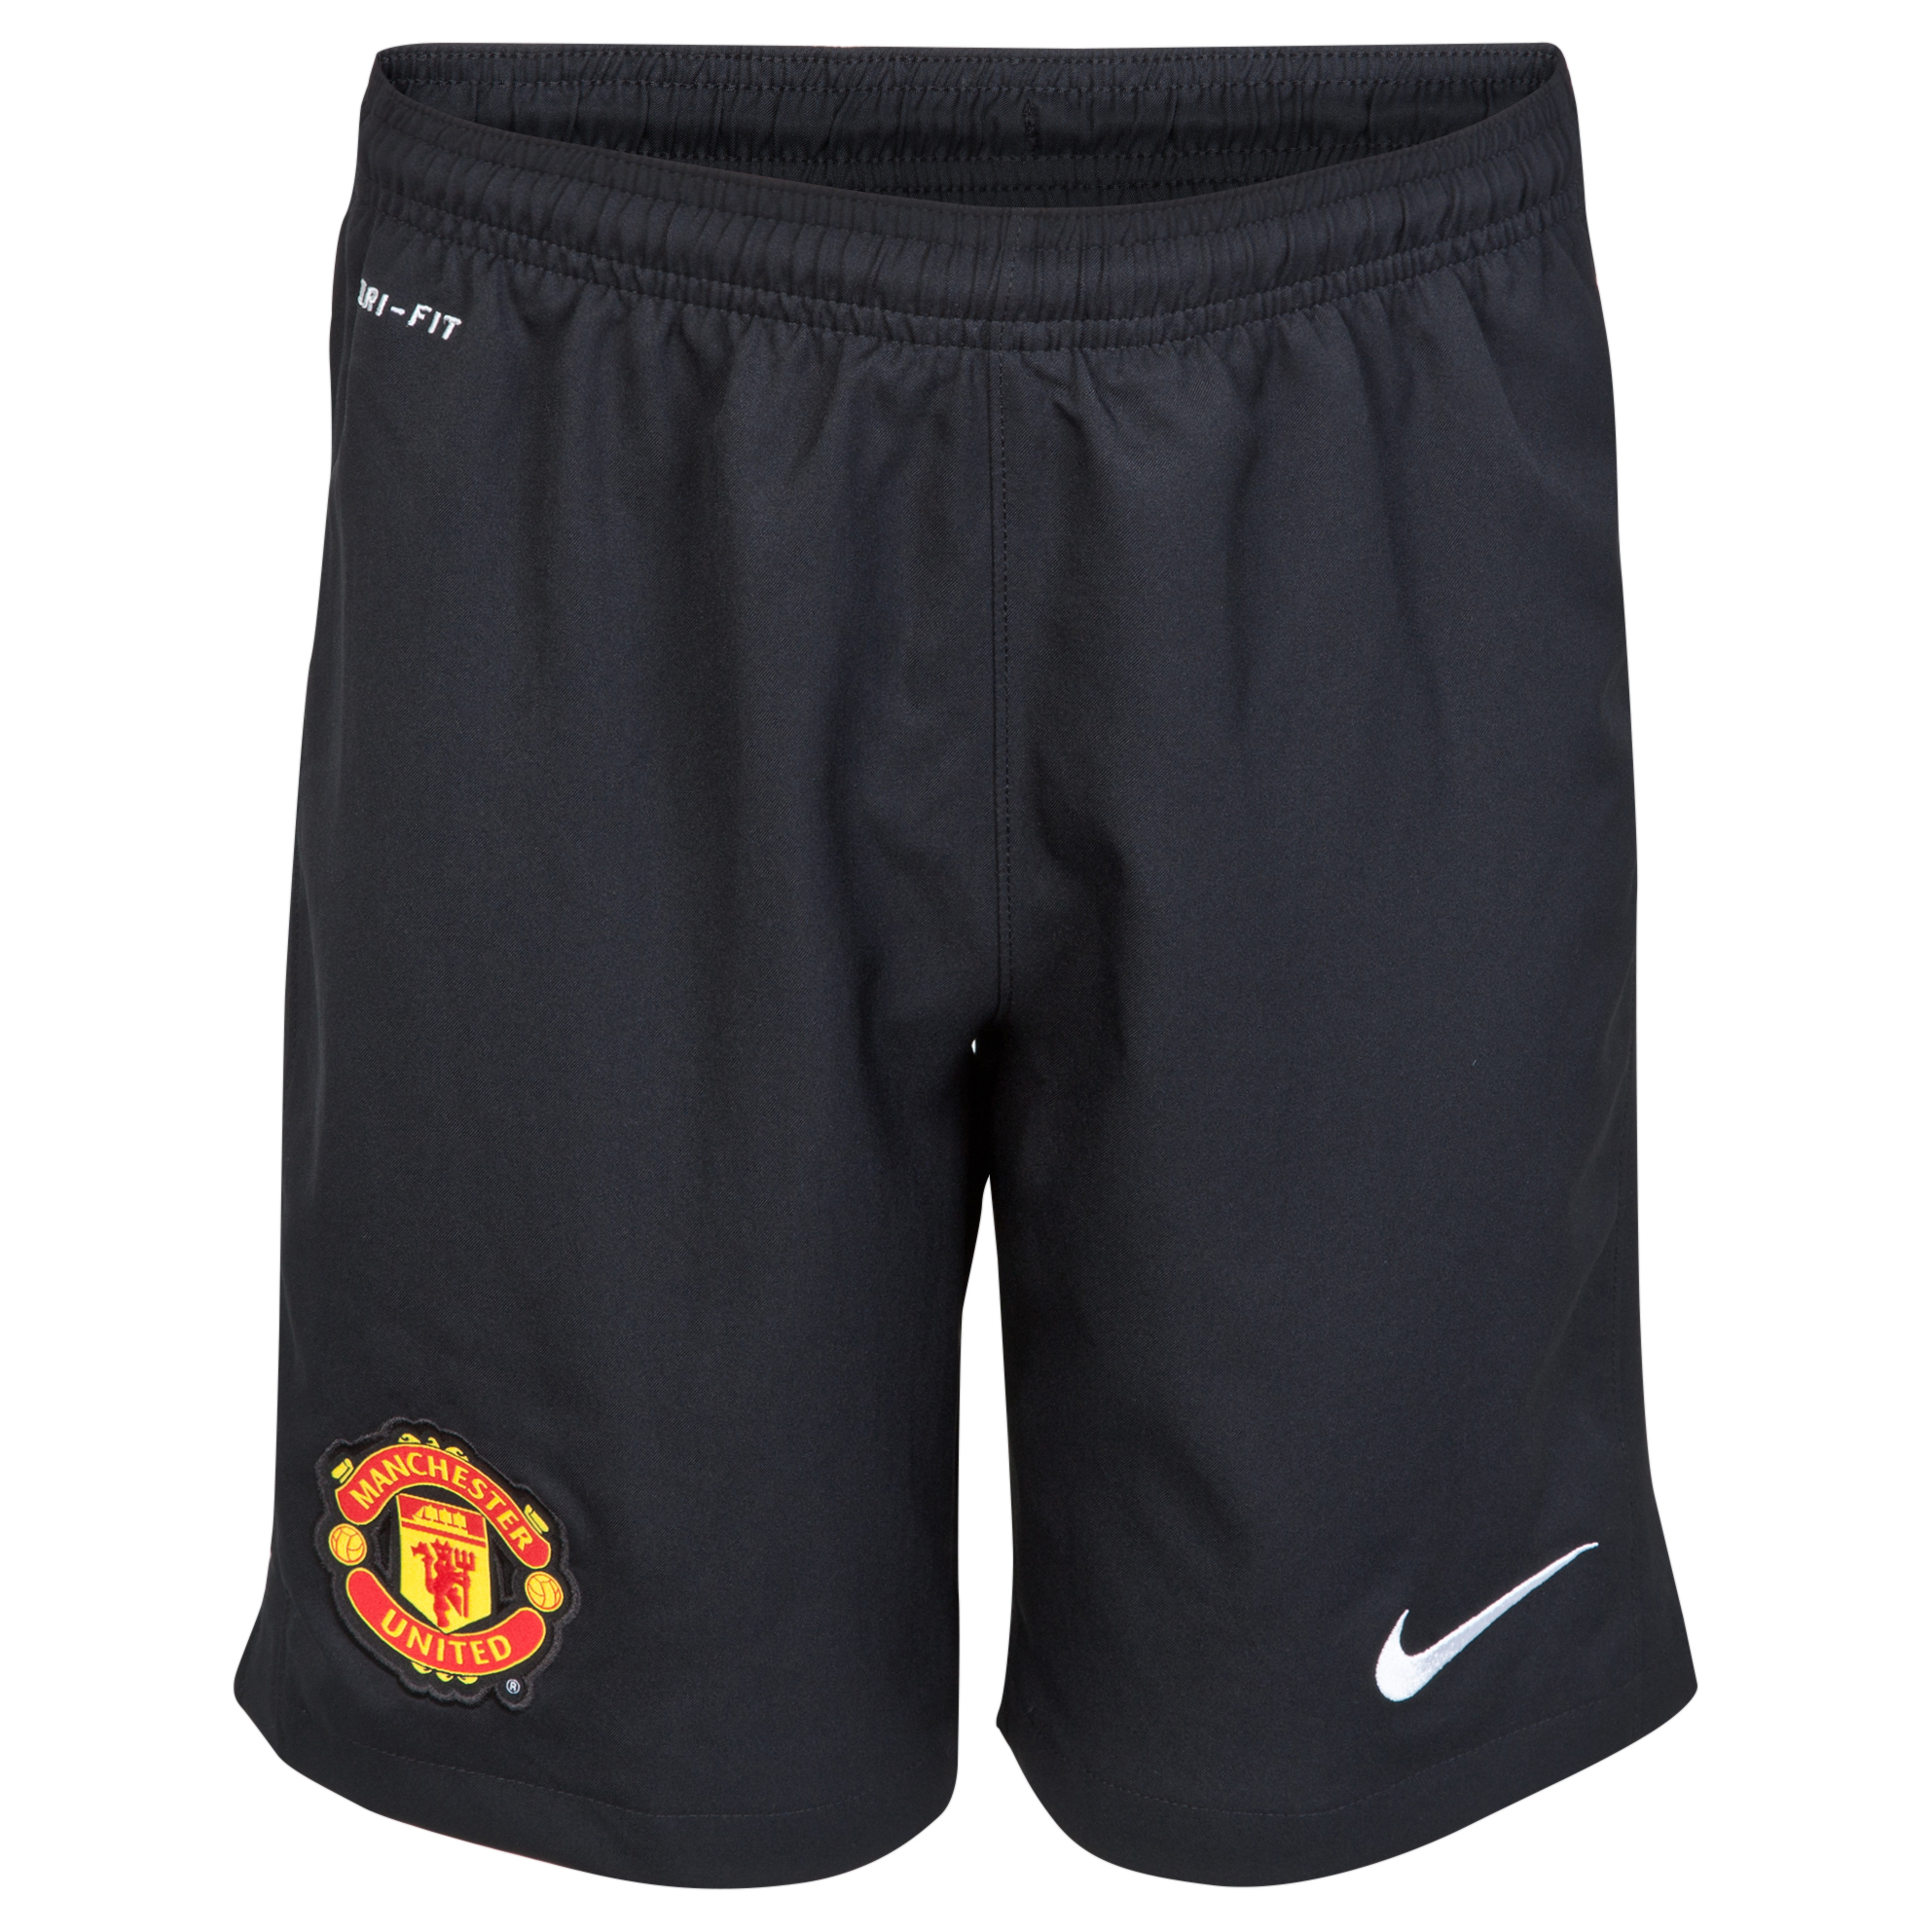 Manchester United Change Goalkeeper Shorts 2014/15